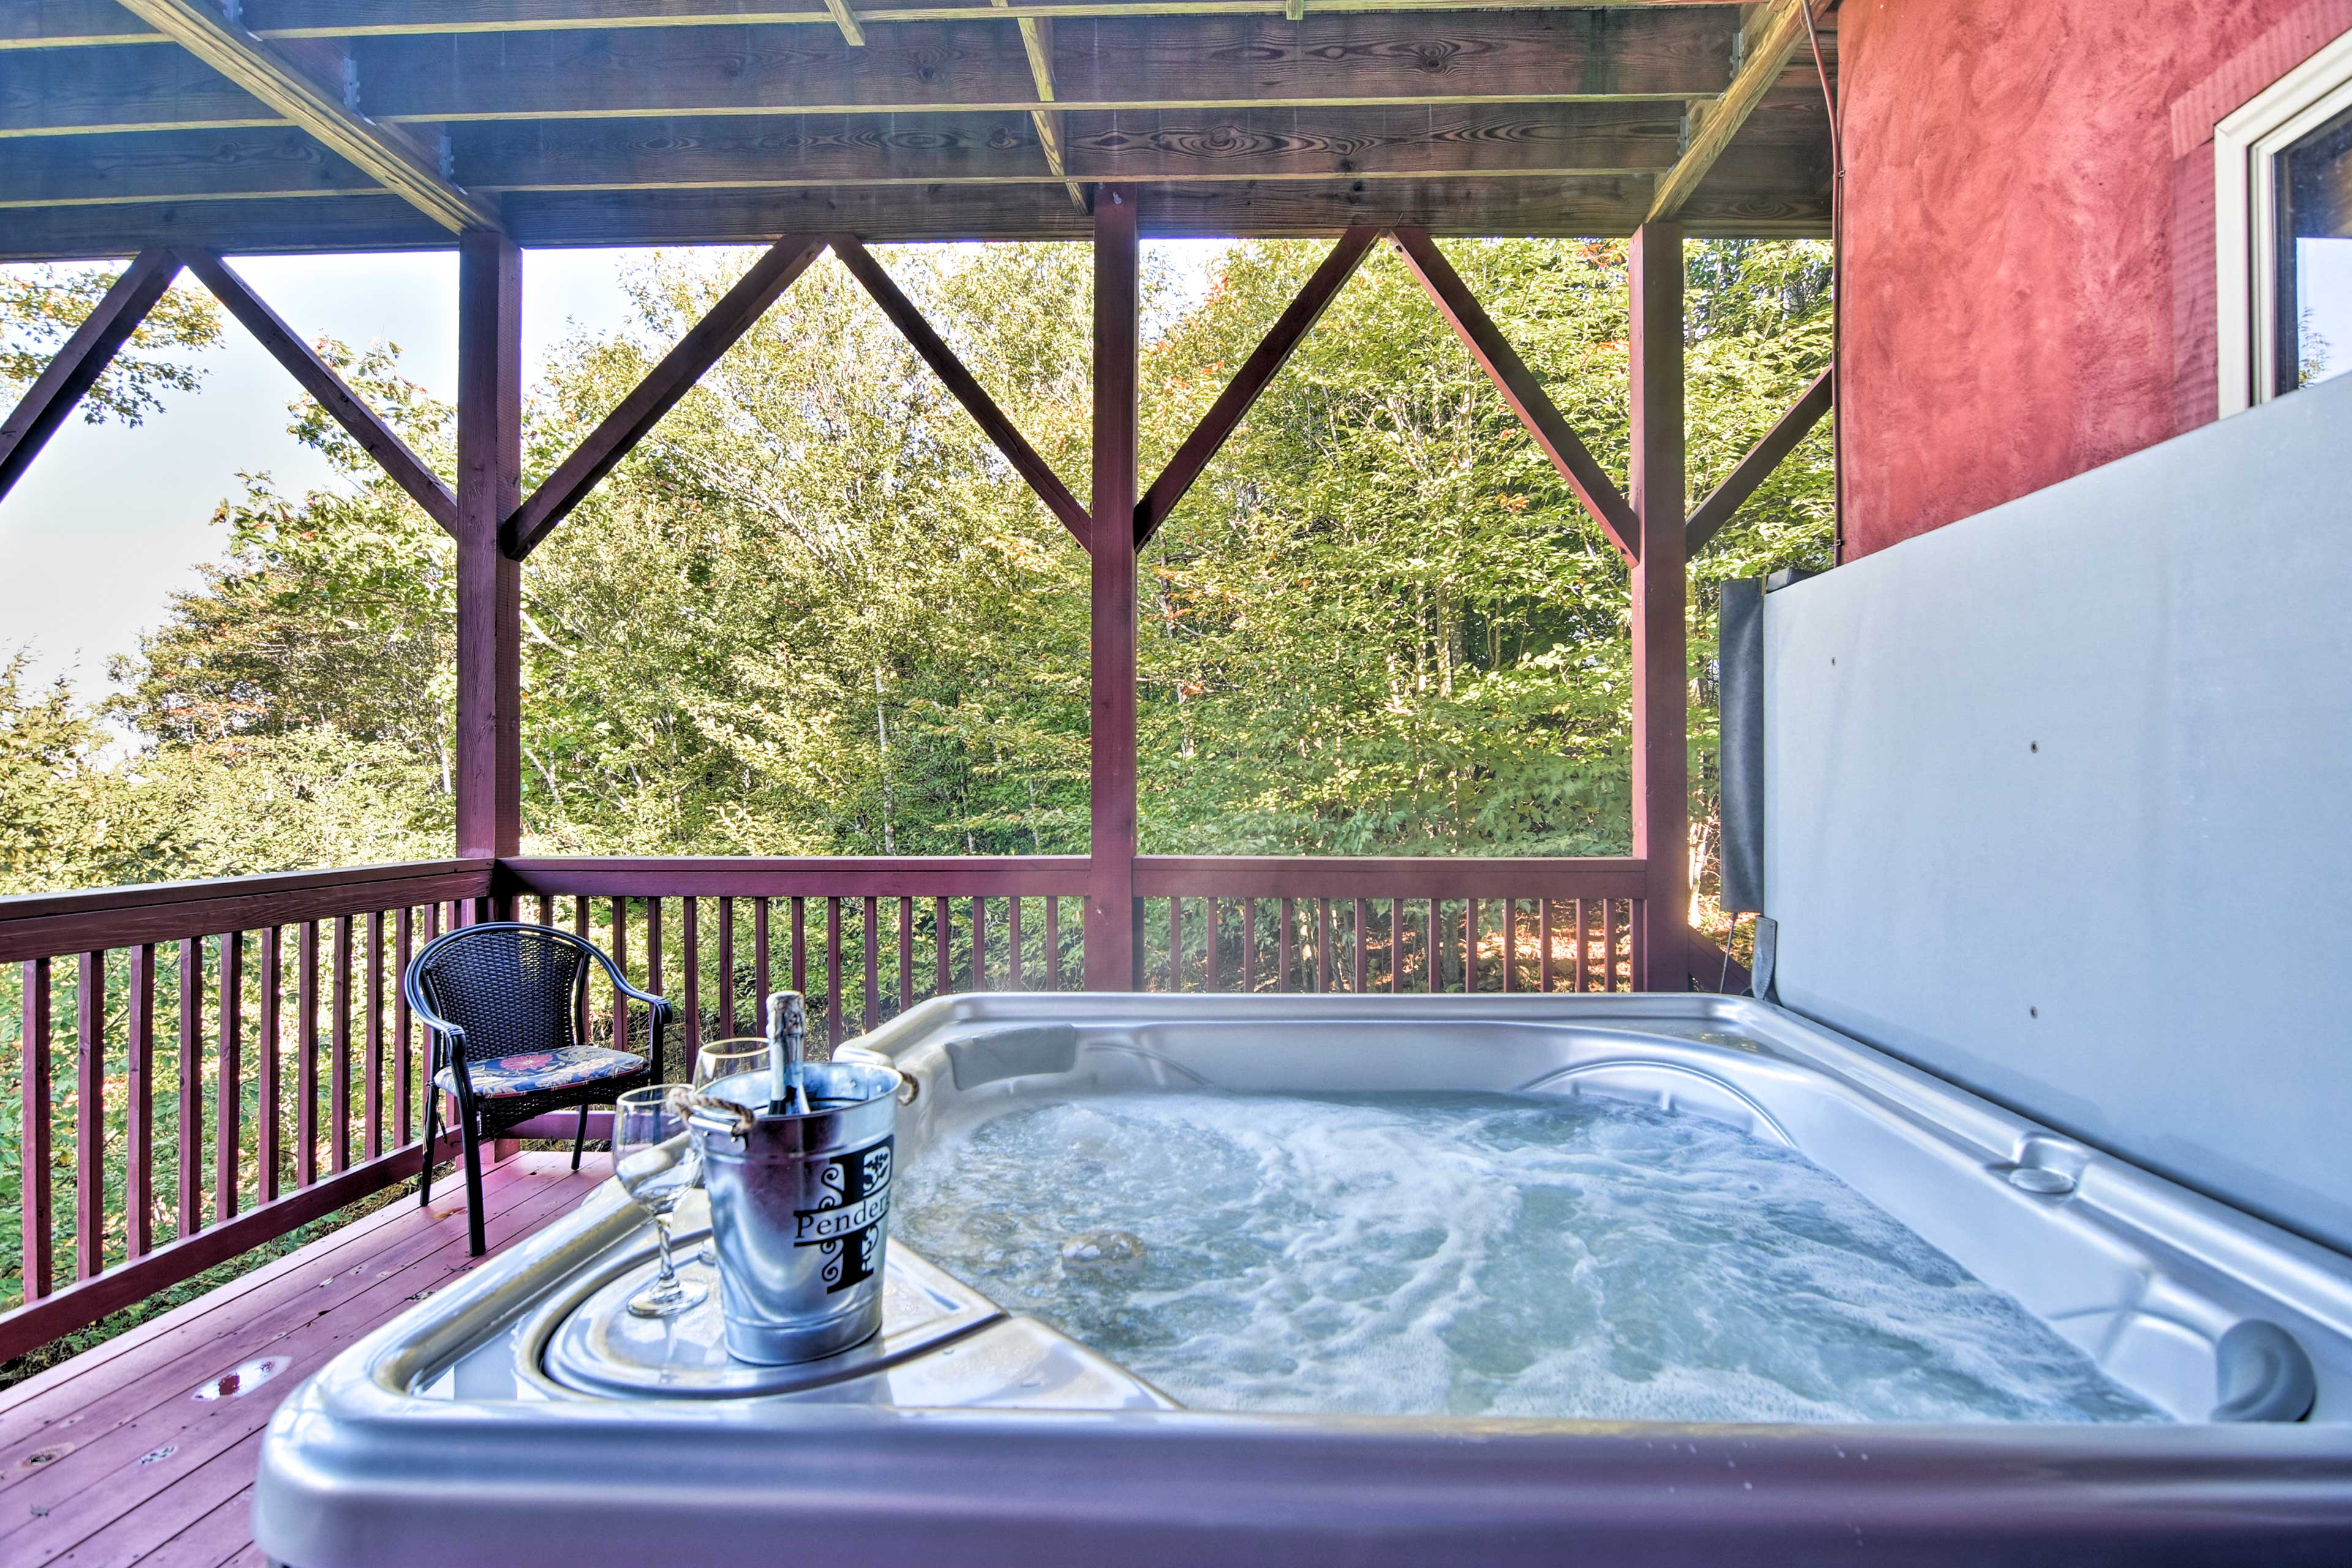 Take a relaxing soak in the hot tub after returning home from the slopes!